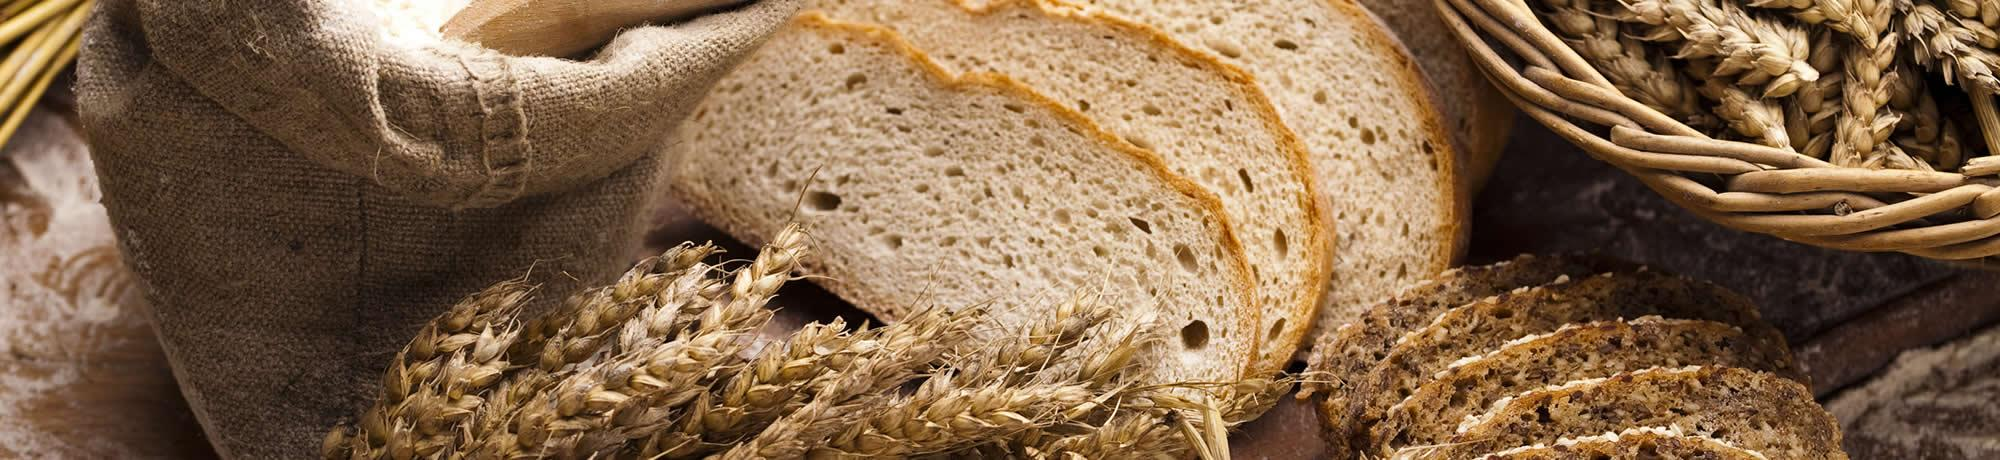 Bread, Flour, Wheat